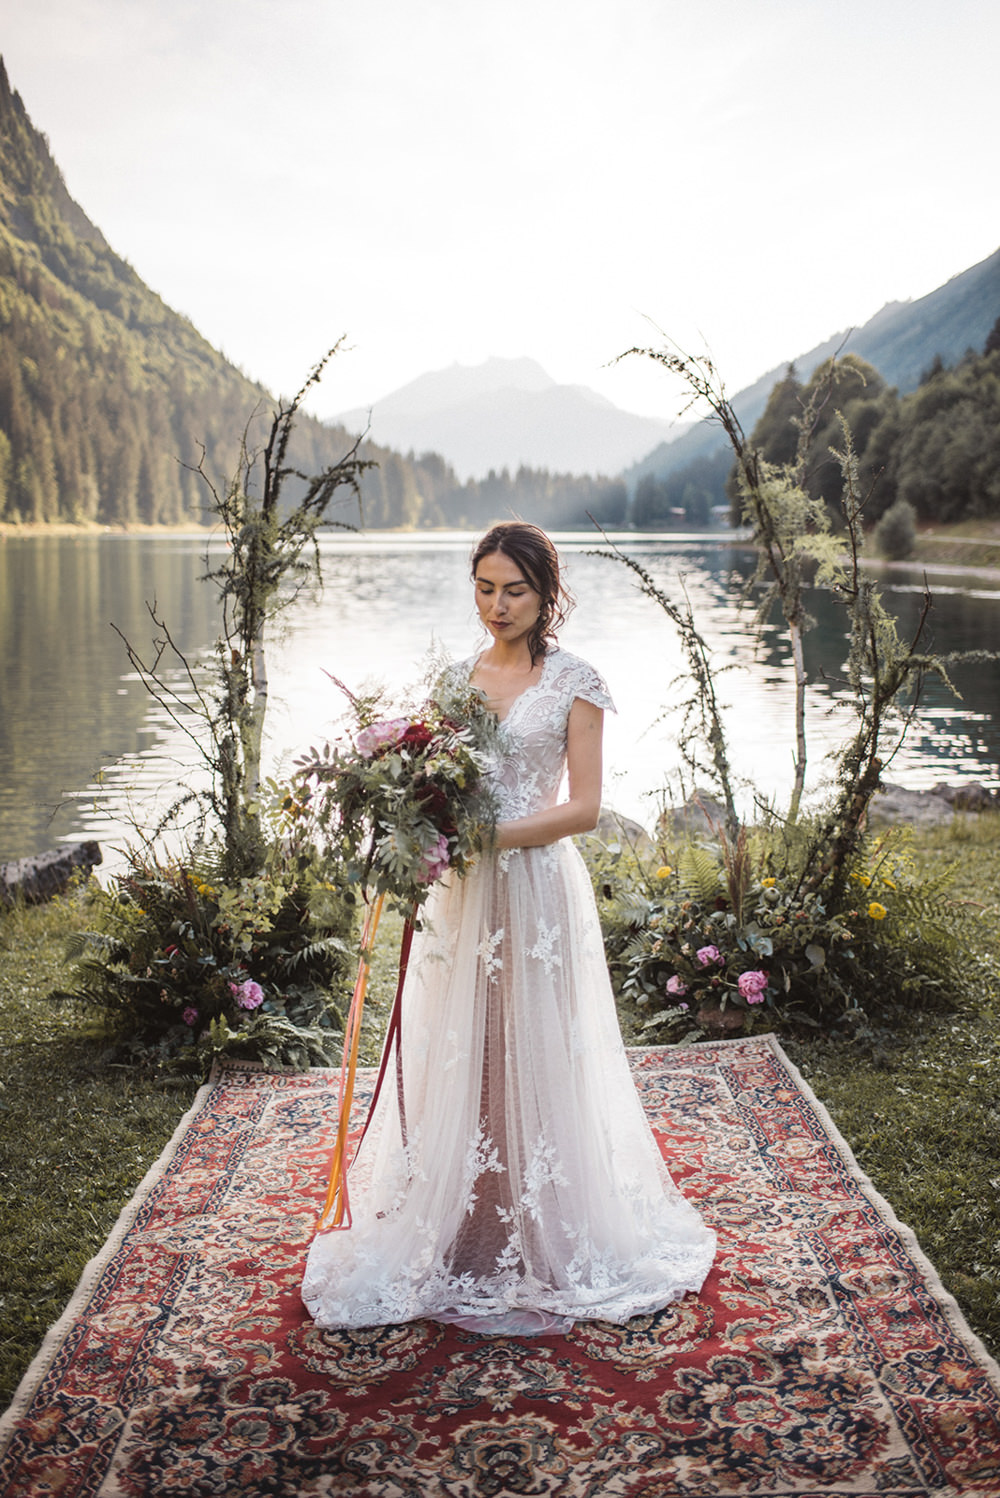 Dress Gown Bride Bridal Lace Cap Sleeves Train French Alps Folk Boho Mountain Wedding Ideas Katja & Simon Photography